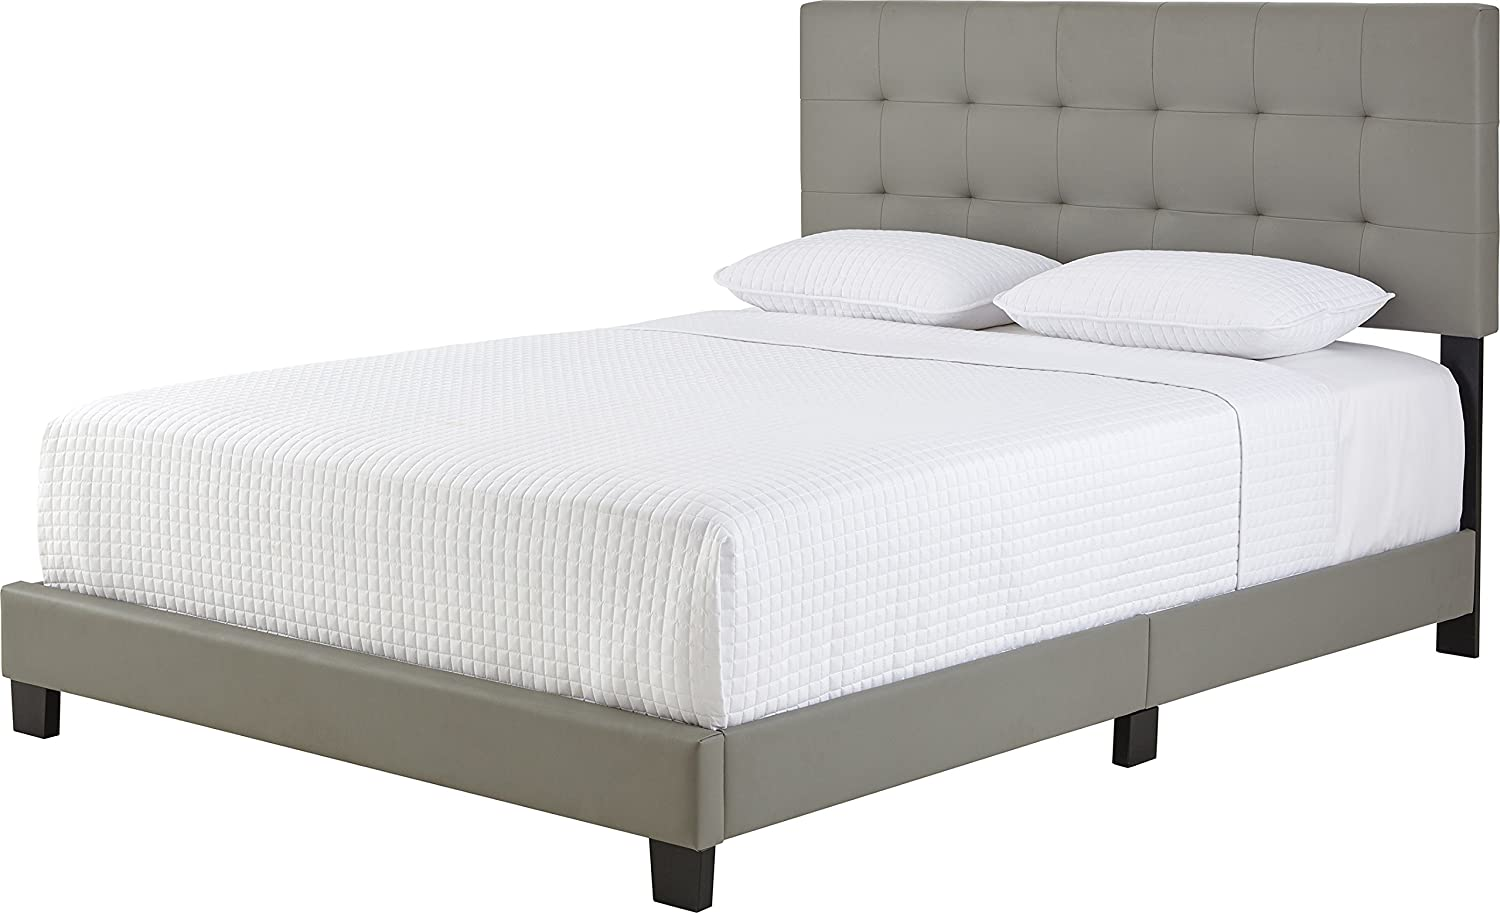 Boyd Sleep Murphy Upholstered Platform Bed Frame With Tufted